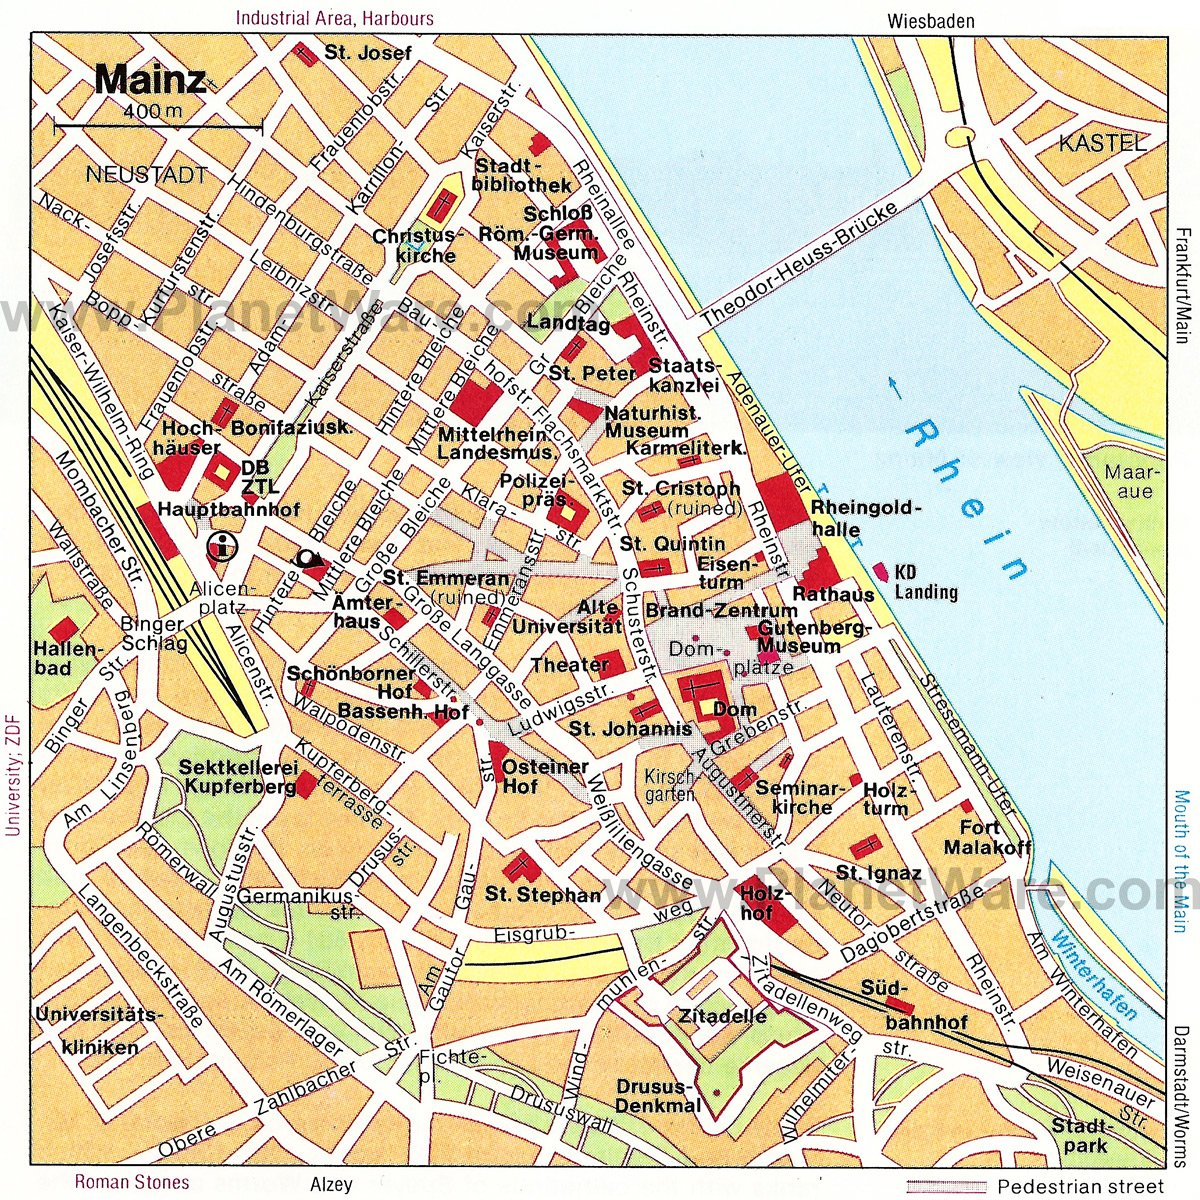 toprated tourist attractions in mainz  planetware - mainz map  tourist attractions